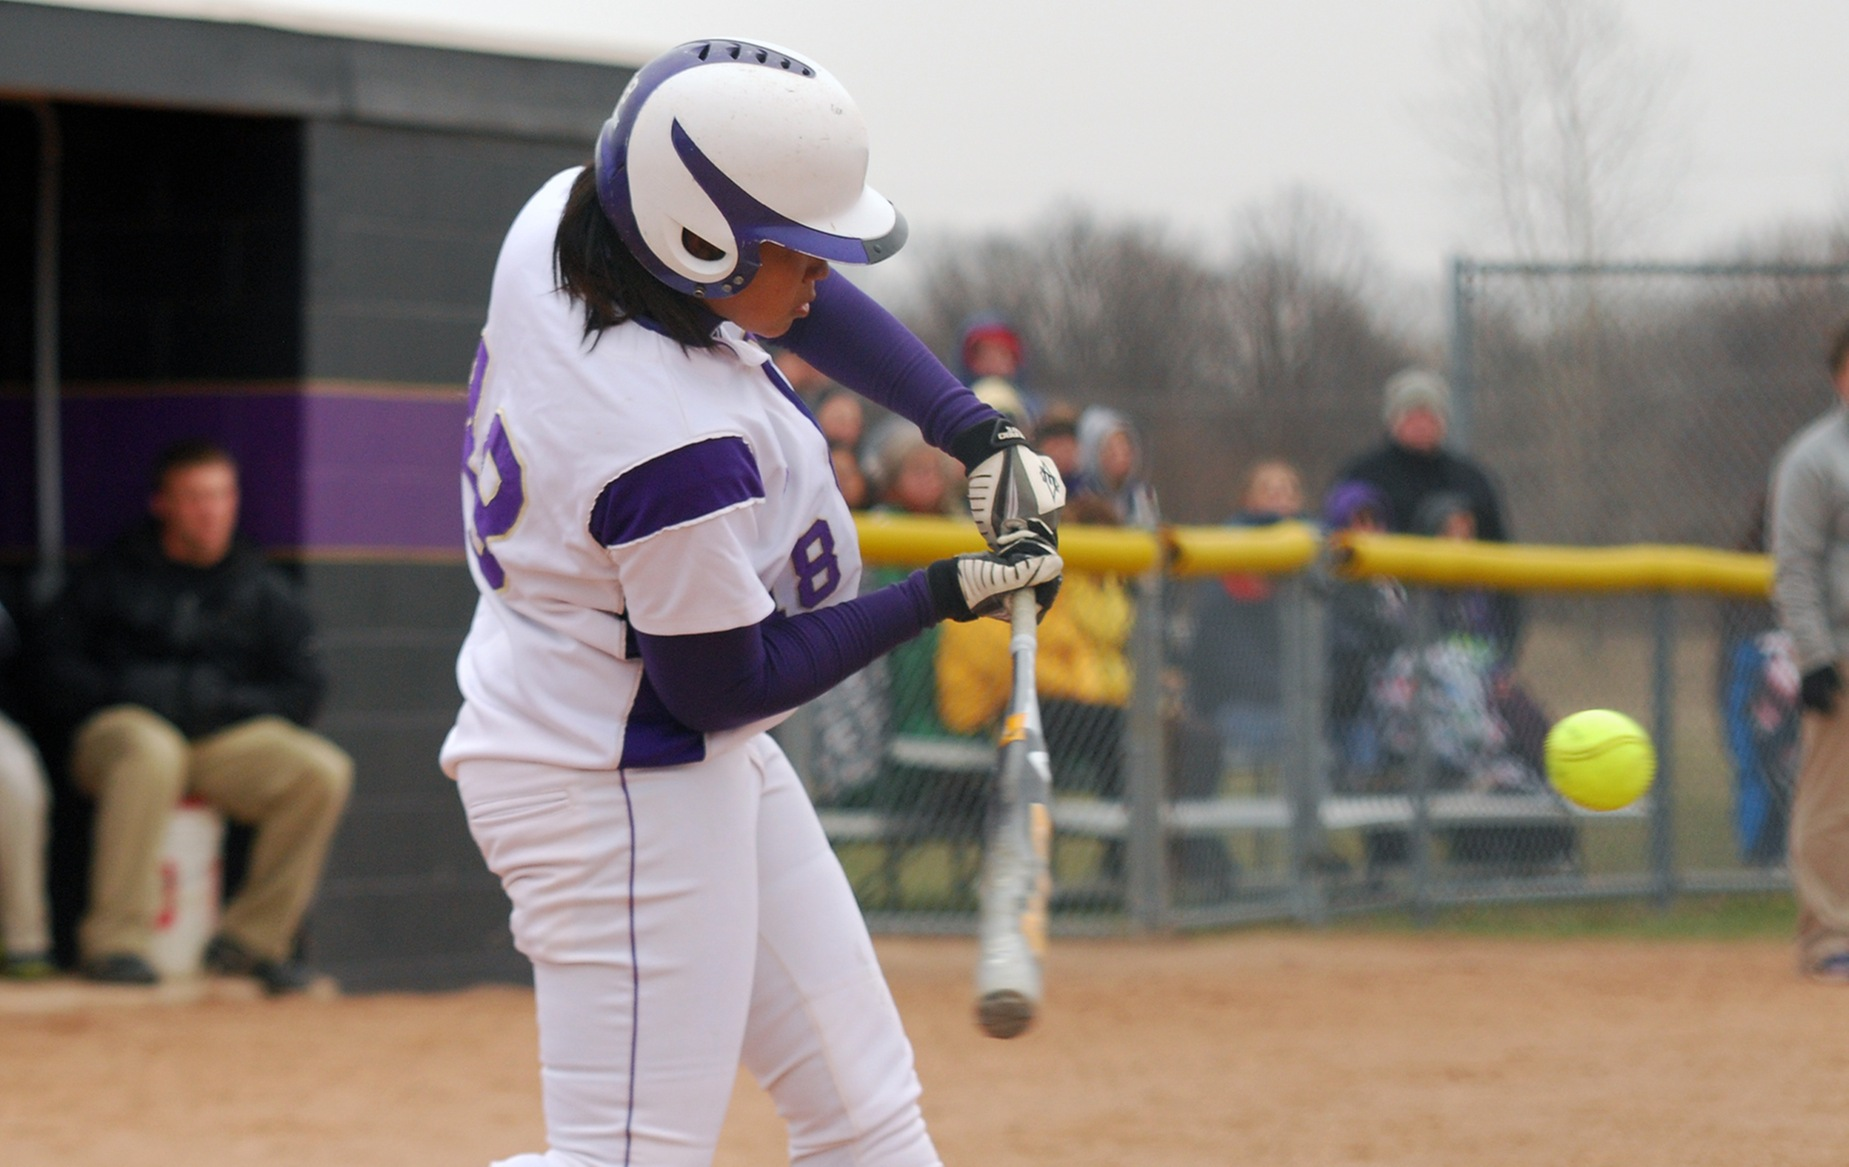 DC Softball Splits in Doubleheader at Bluffton